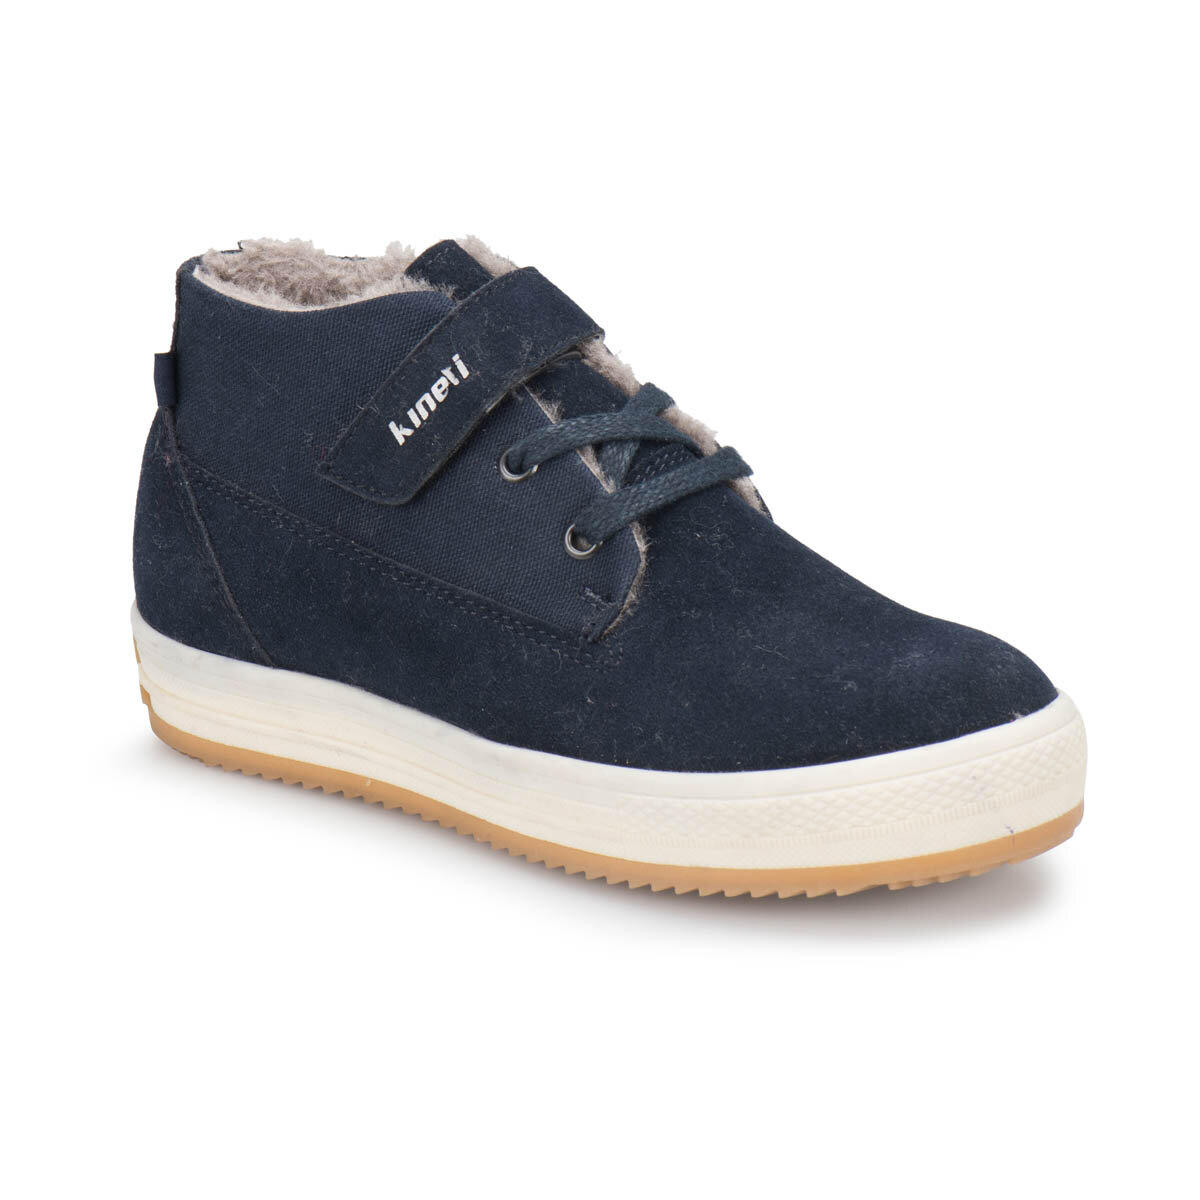 FLO ARTUS Navy Blue Male Child Sneaker Shoes KINETIX